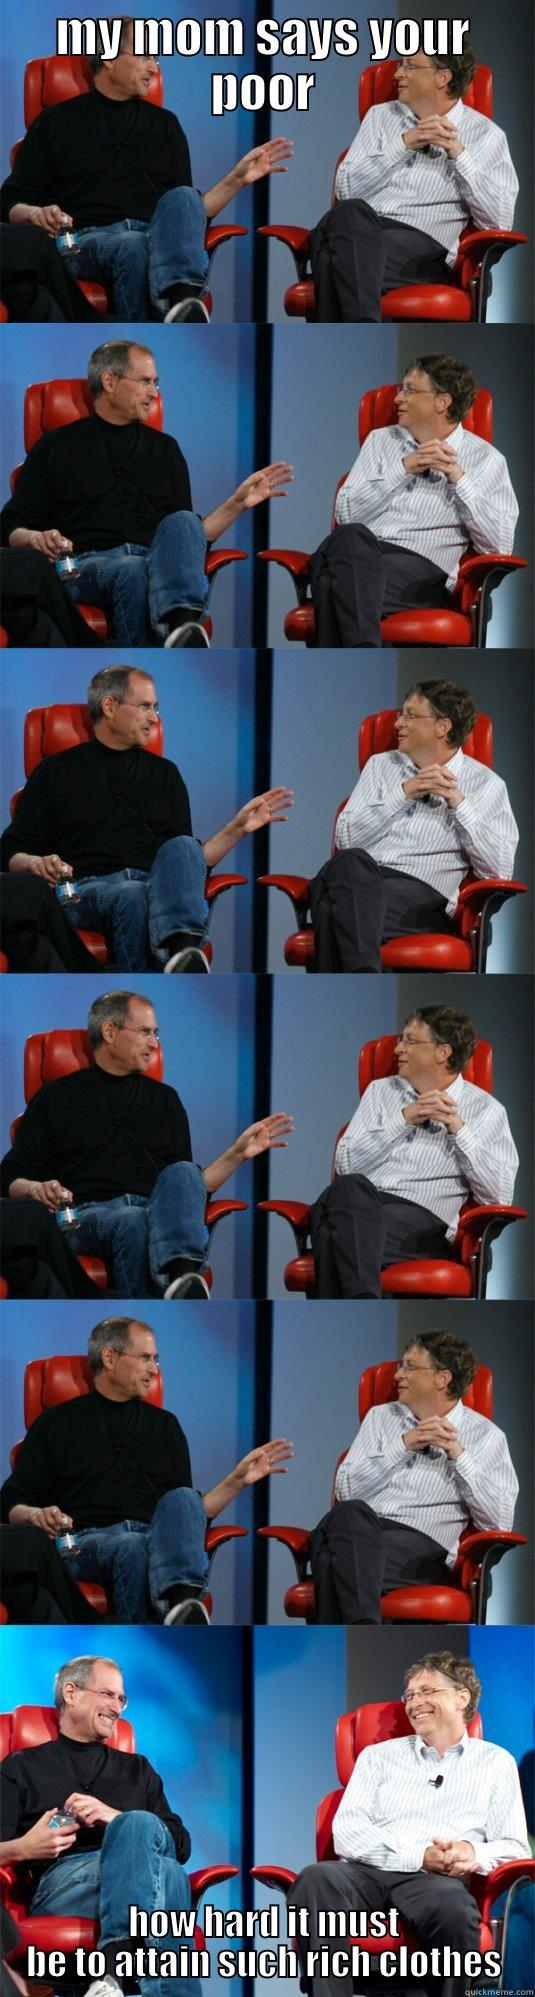 MY MOM SAYS YOUR POOR HOW HARD IT MUST BE TO ATTAIN SUCH RICH CLOTHES Steve Jobs vs Bill Gates